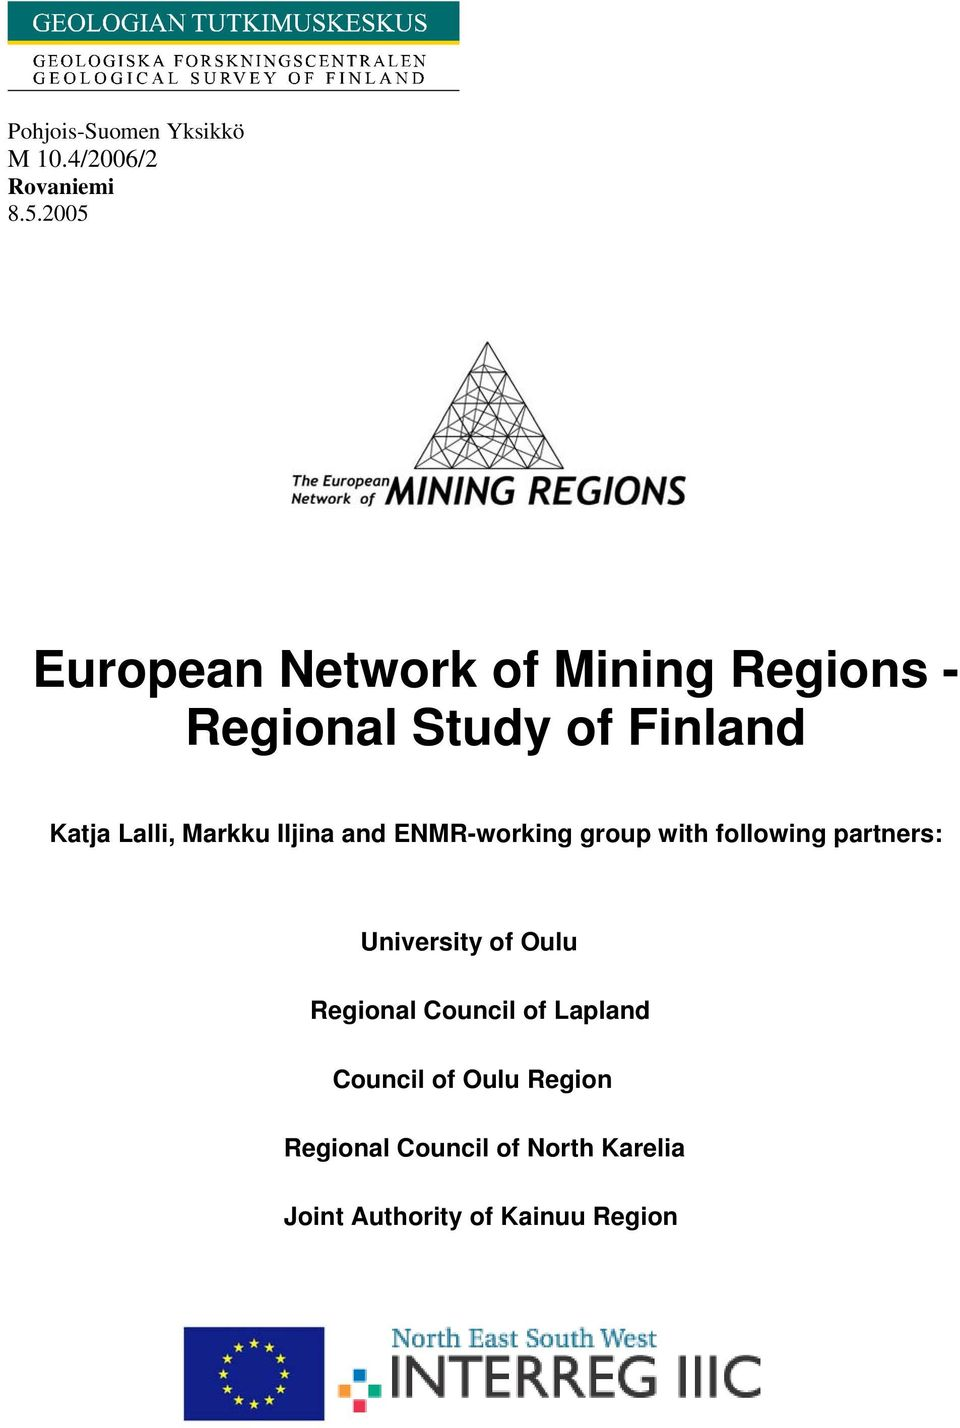 Markku Iljina and ENMR-working group with following partners: University of Oulu